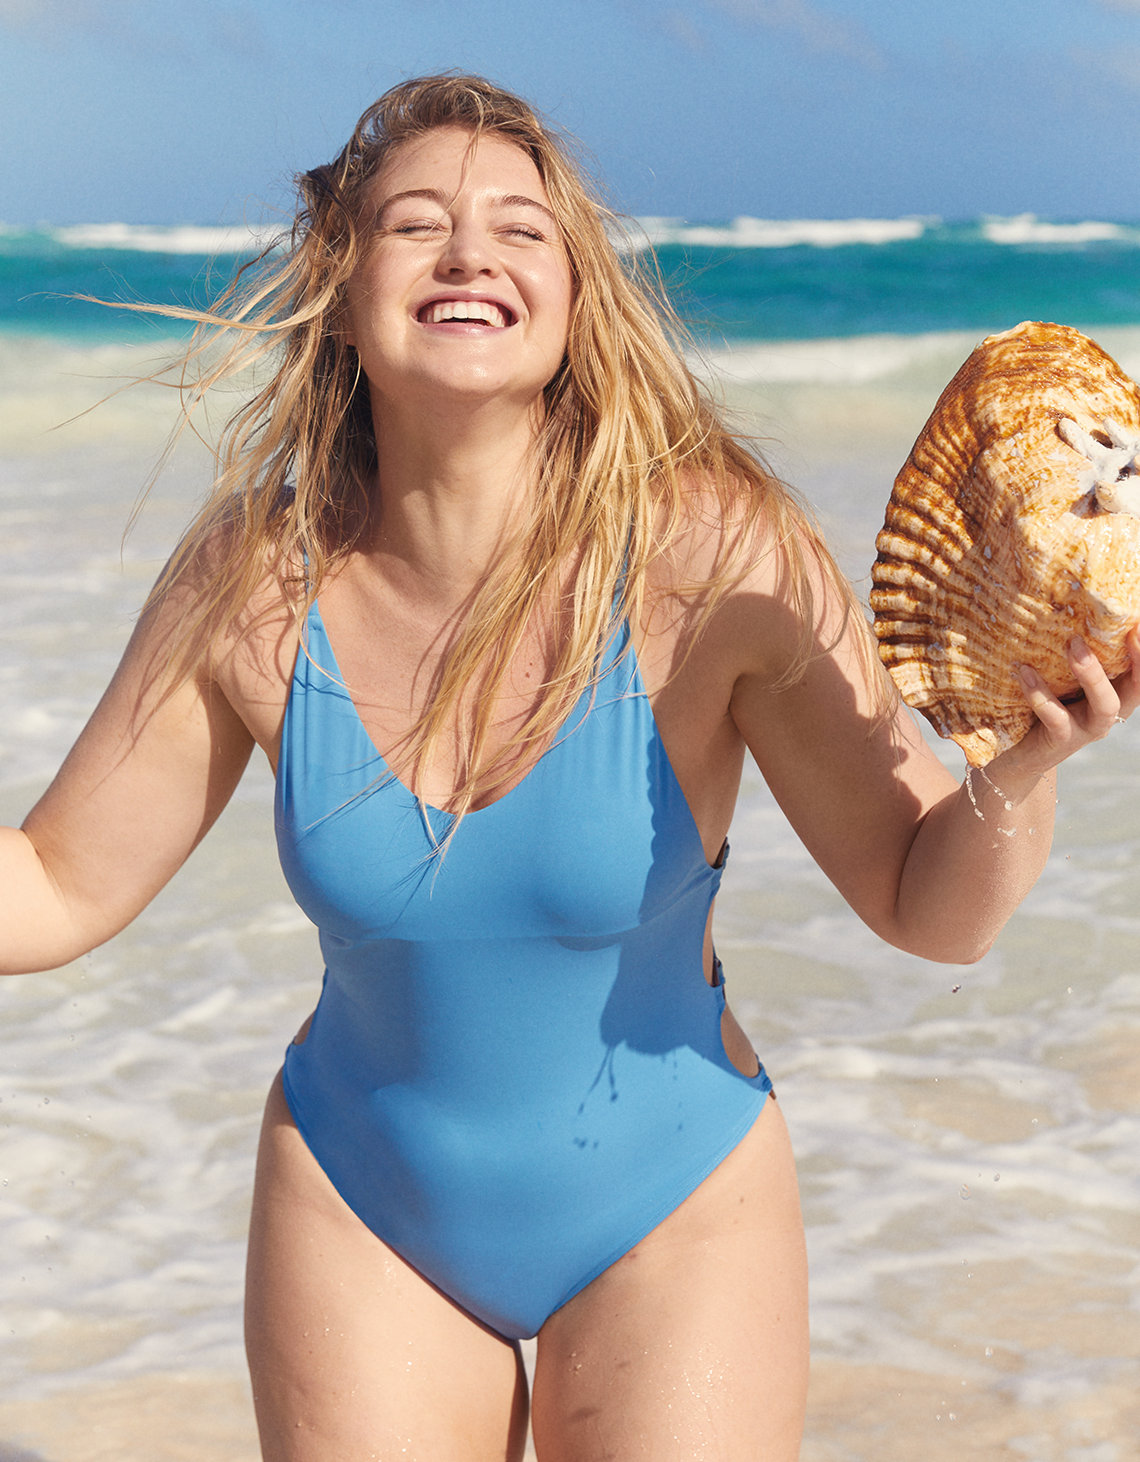 Blue Aerie one piece swimsuit